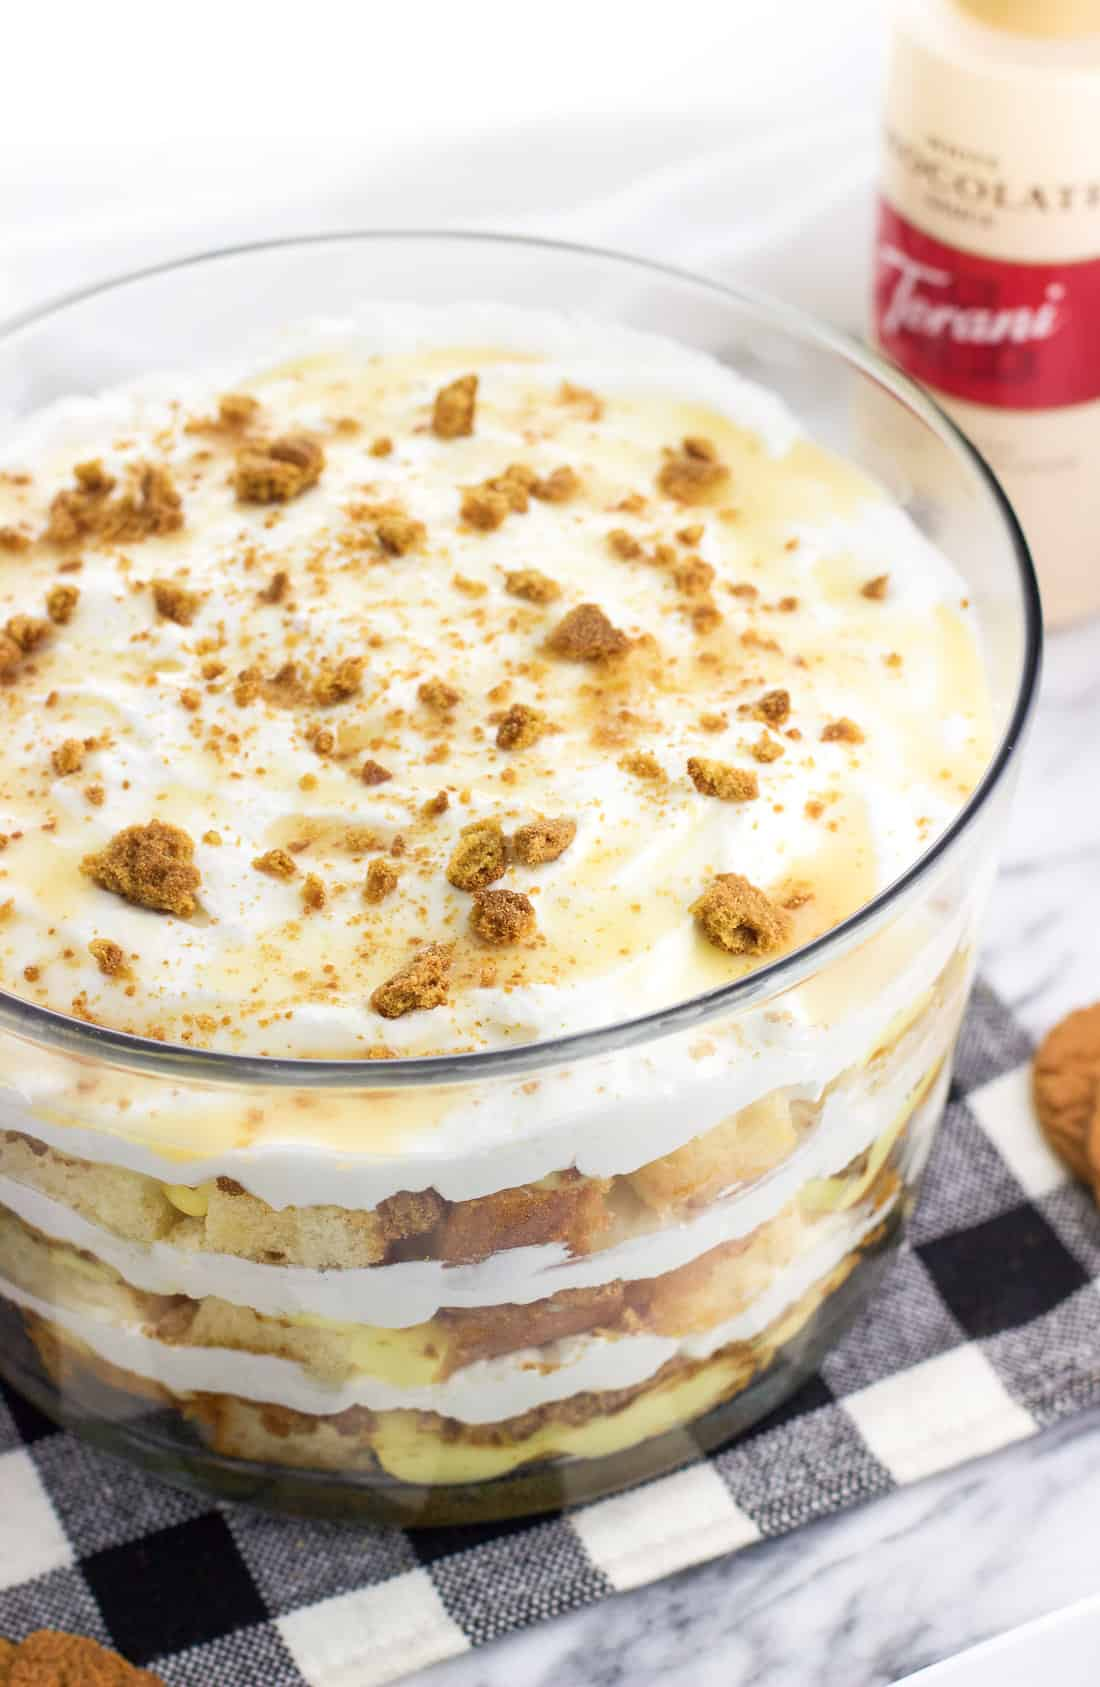 The pound cake trifle in a large trifle bowl with a bottle of Torani white chocolate syrup in the background